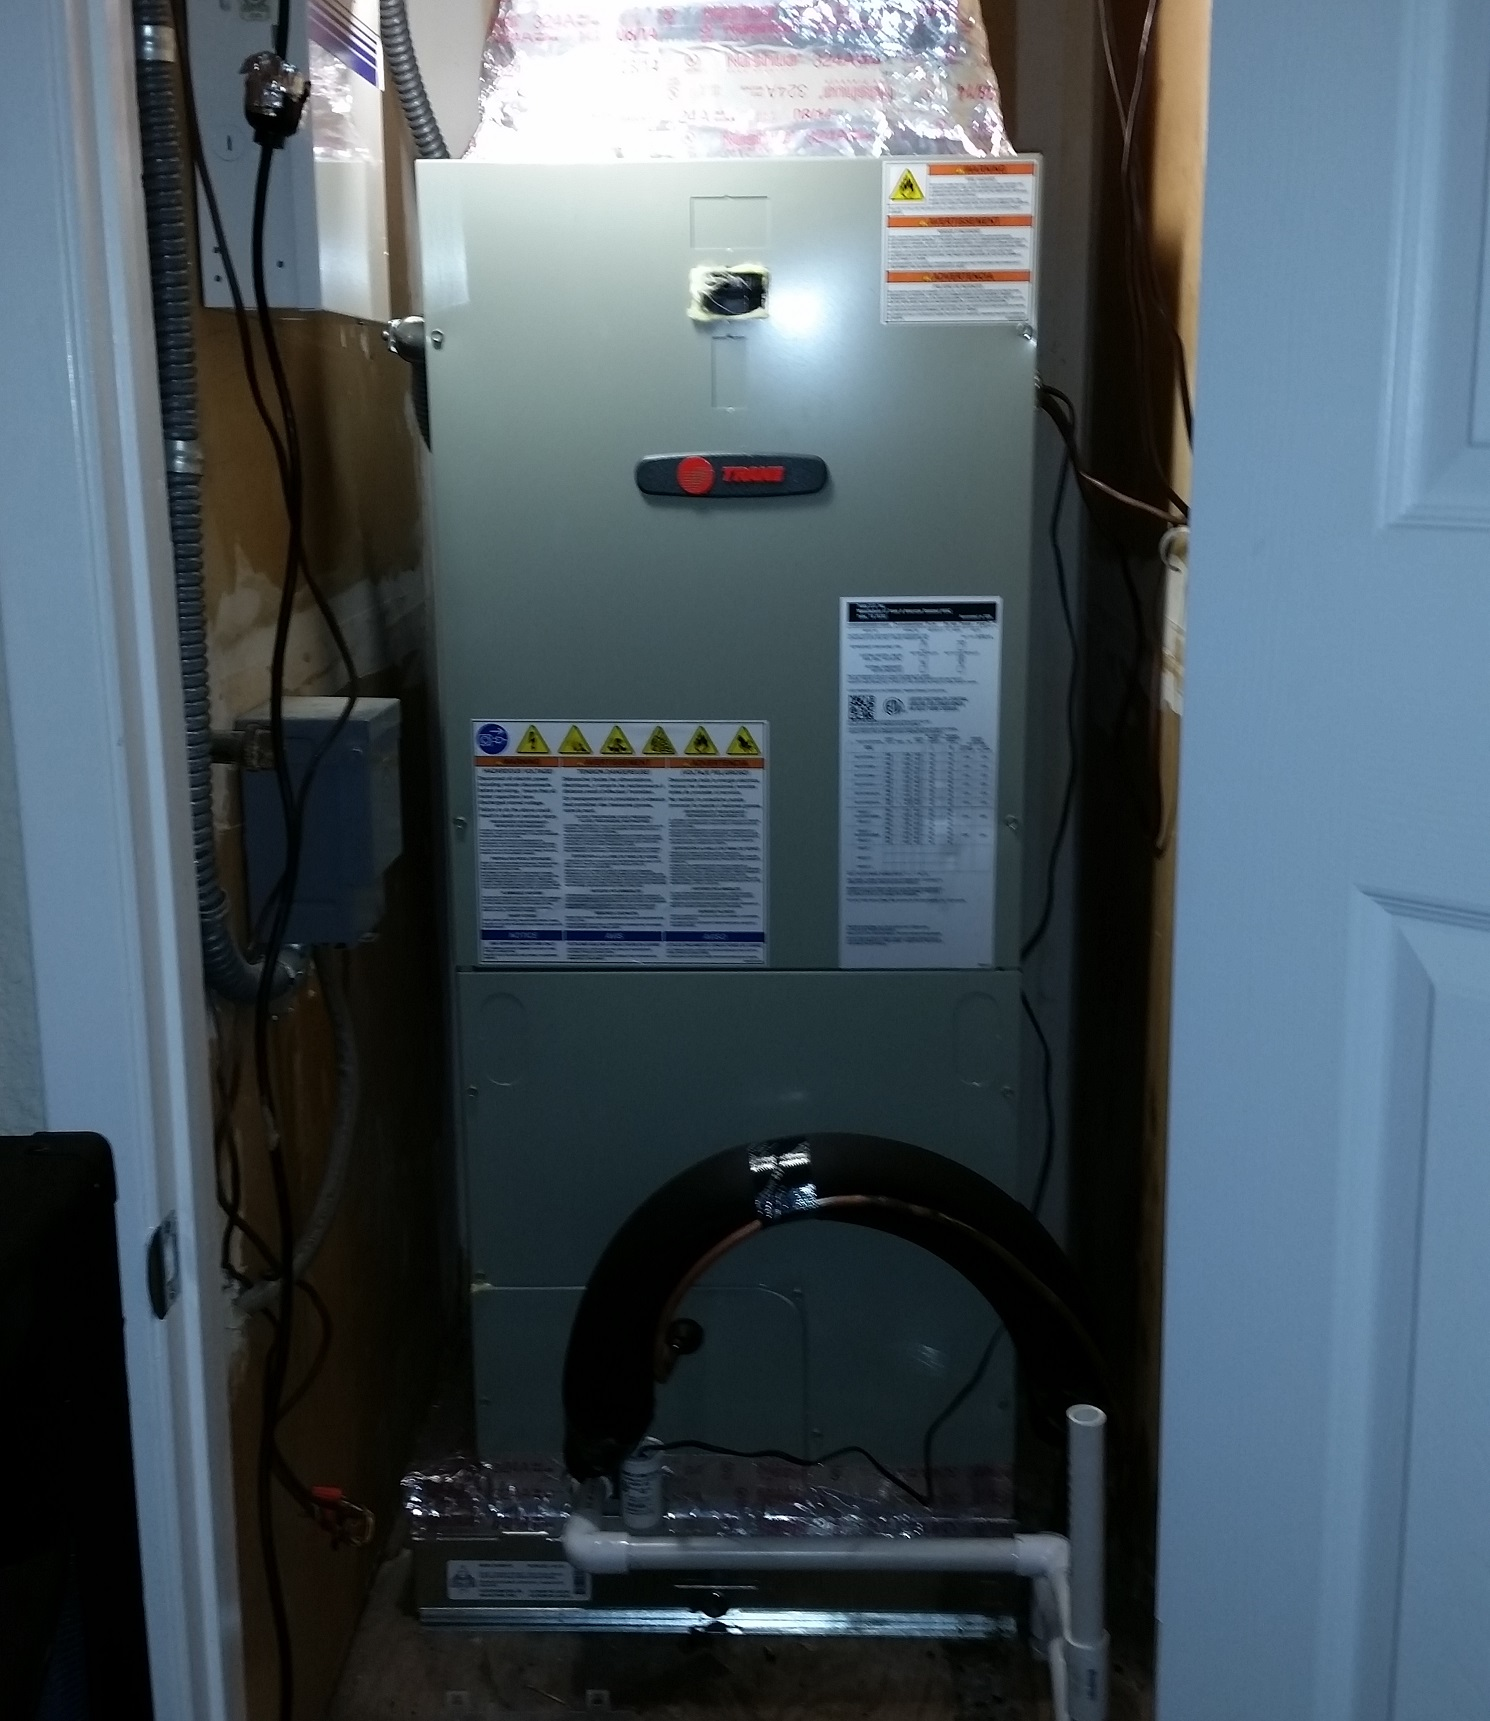 The plenum is the ducted section that run from your furnace or air handler that runs to the duct work